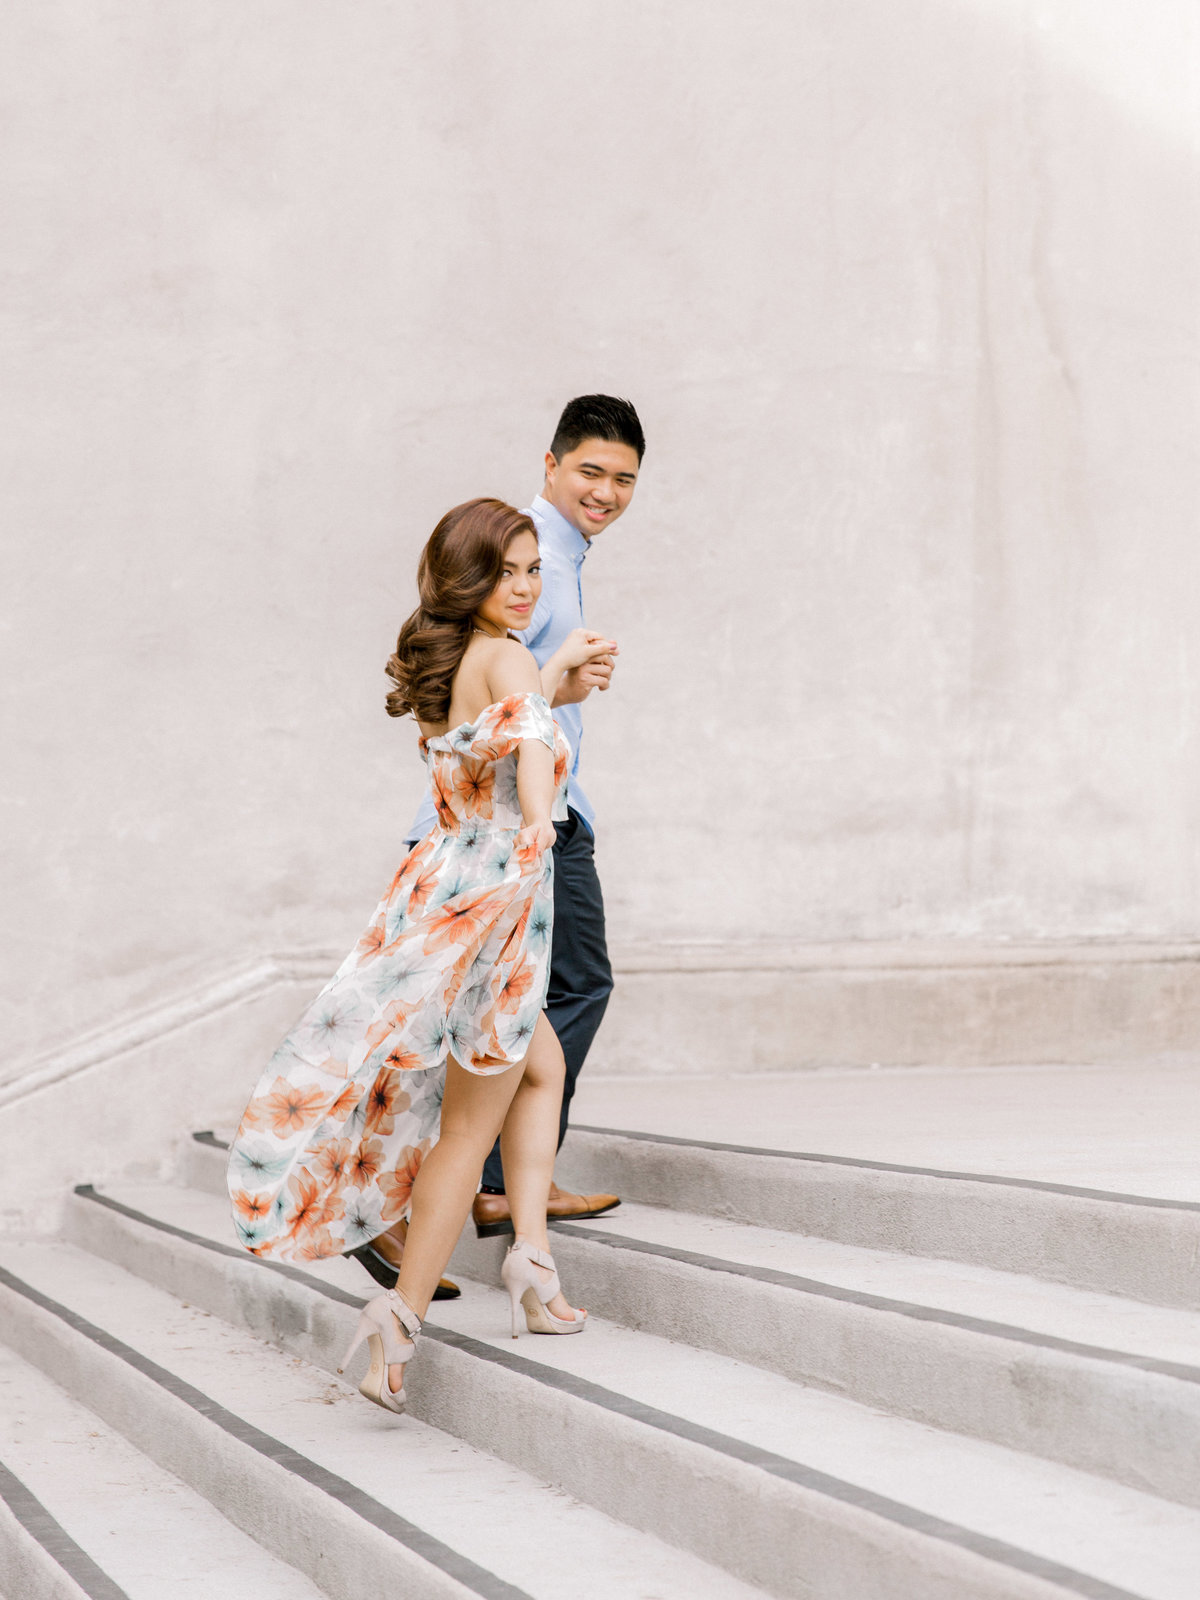 Babsie-Ly-Photography-fine-art-film-destination-engagement-photographer-san-diego-california-asian-Philippines-filipino-bride-balboa-park-004